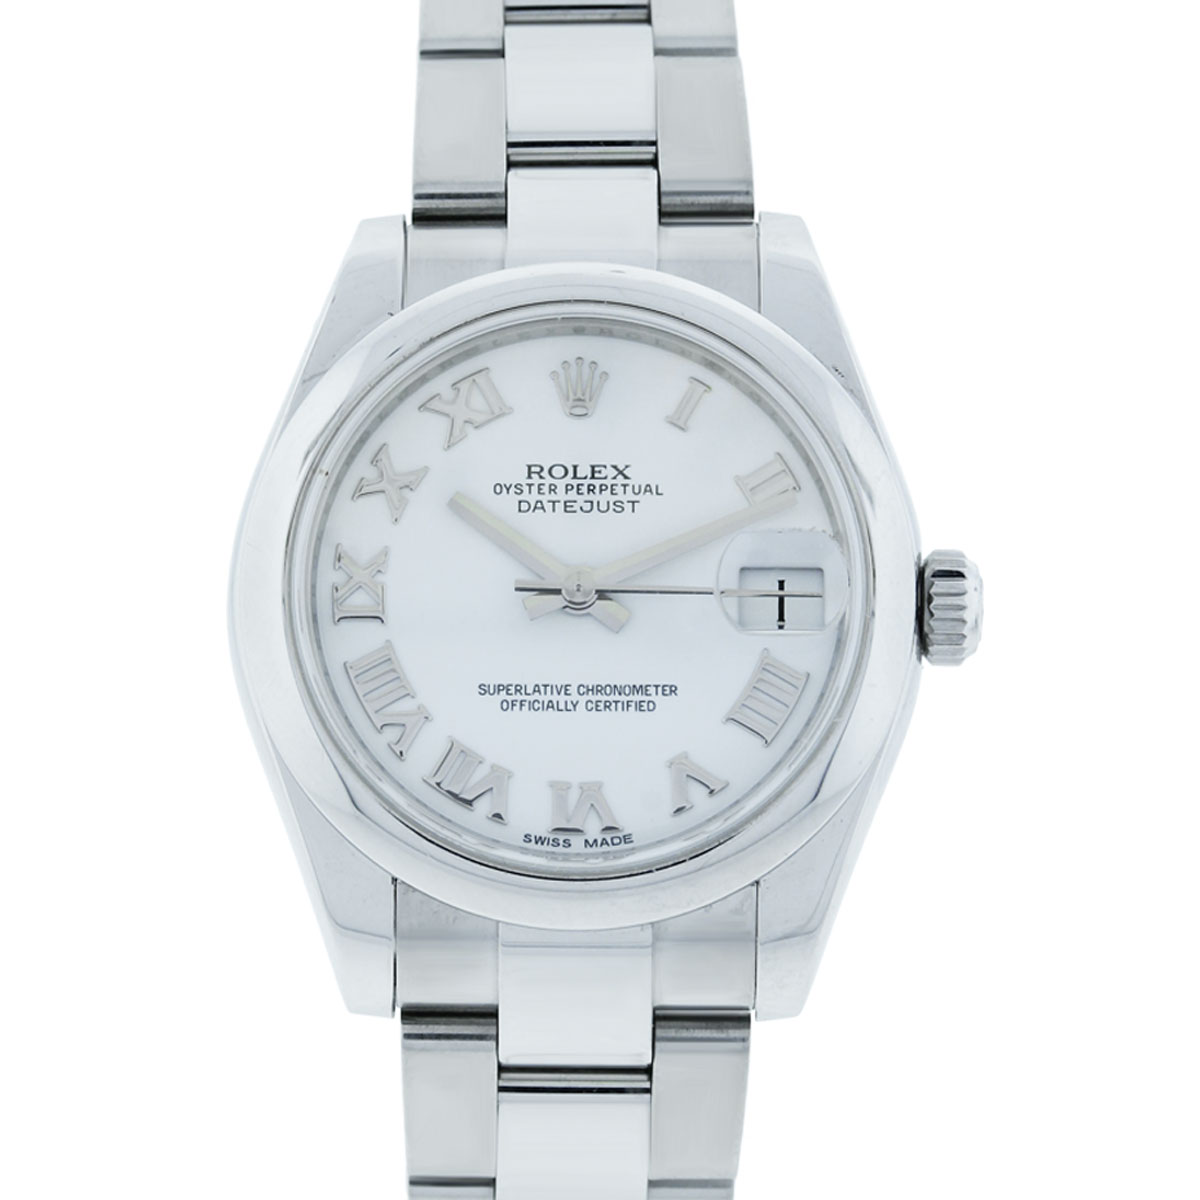 You are viewing this Rolex Datejust 178240 White Roman Dial Midsize Watch!